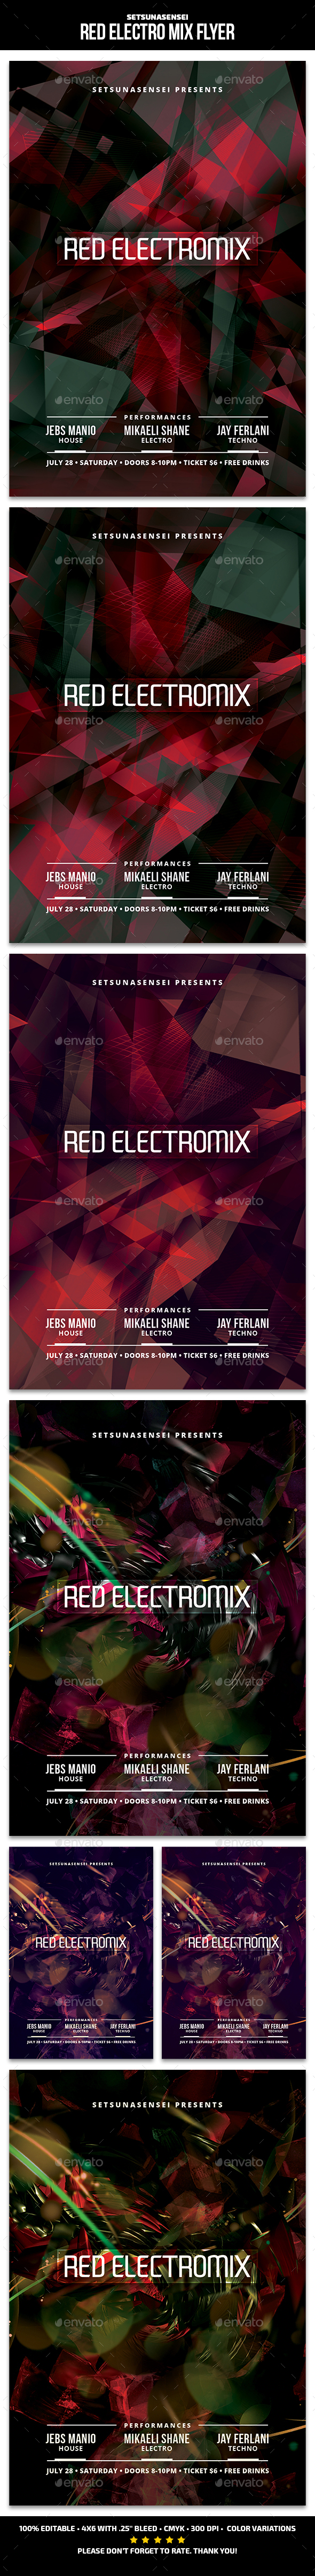 Red Electro Mix Flyer - Clubs & Parties Events